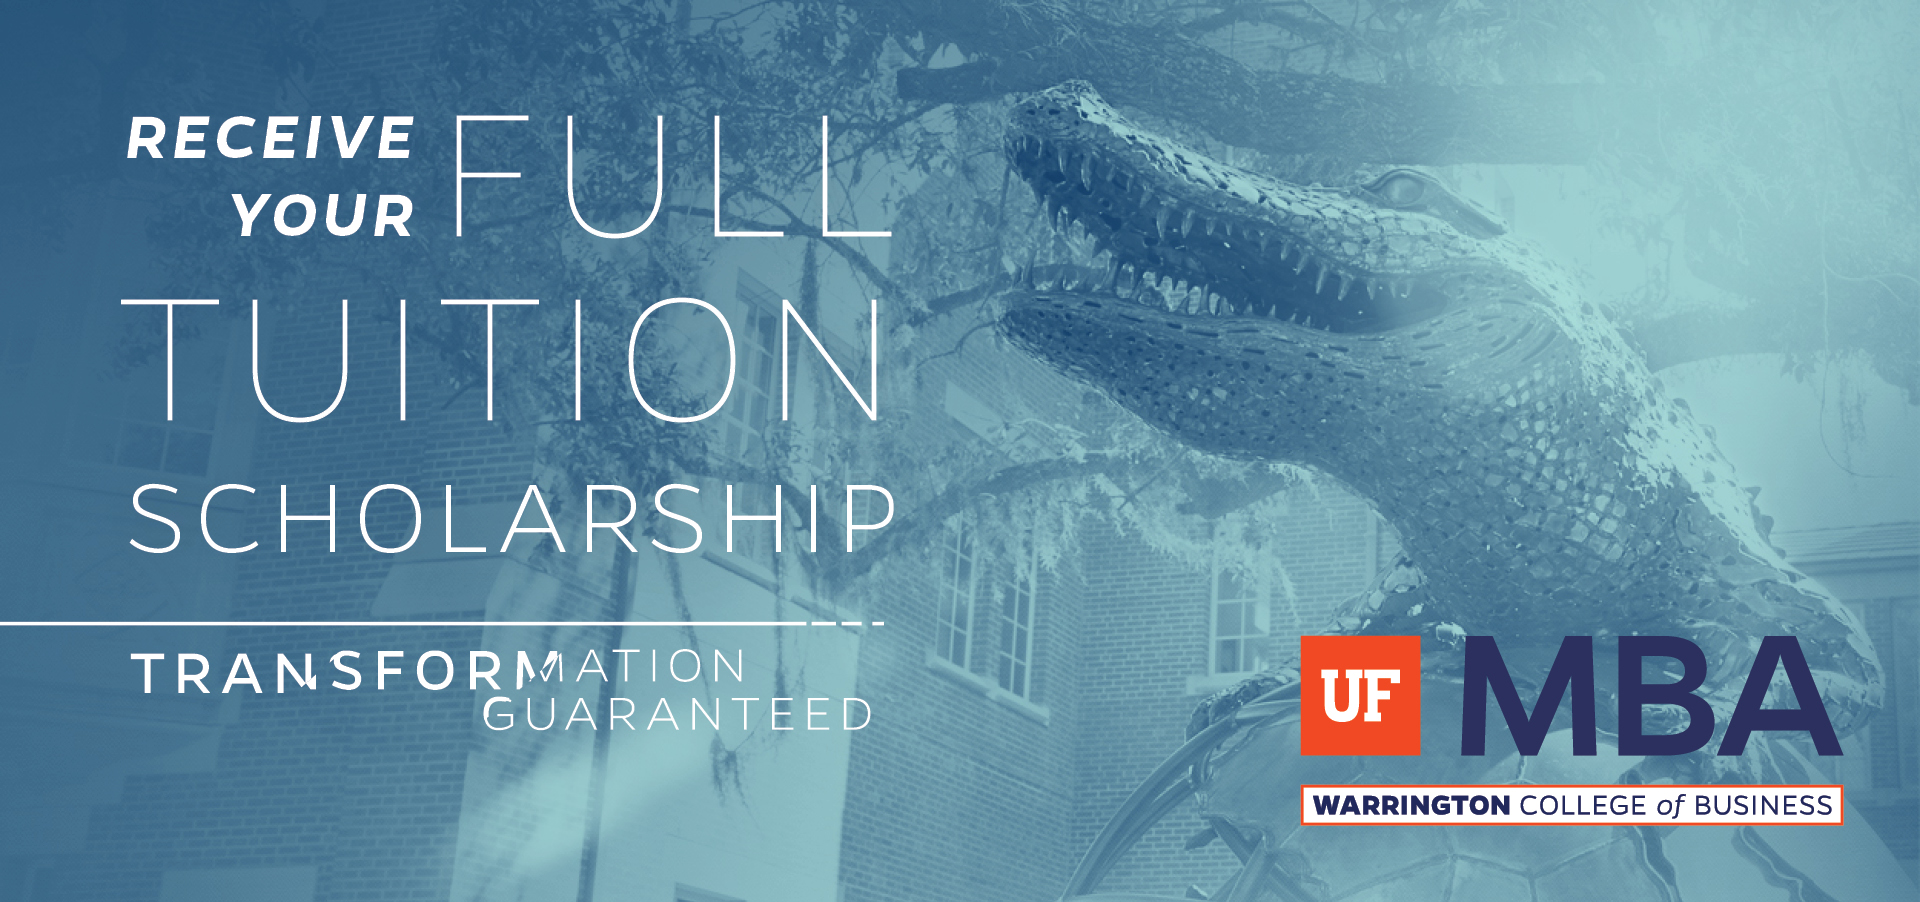 UF MBA Receive your full tuition scholarship